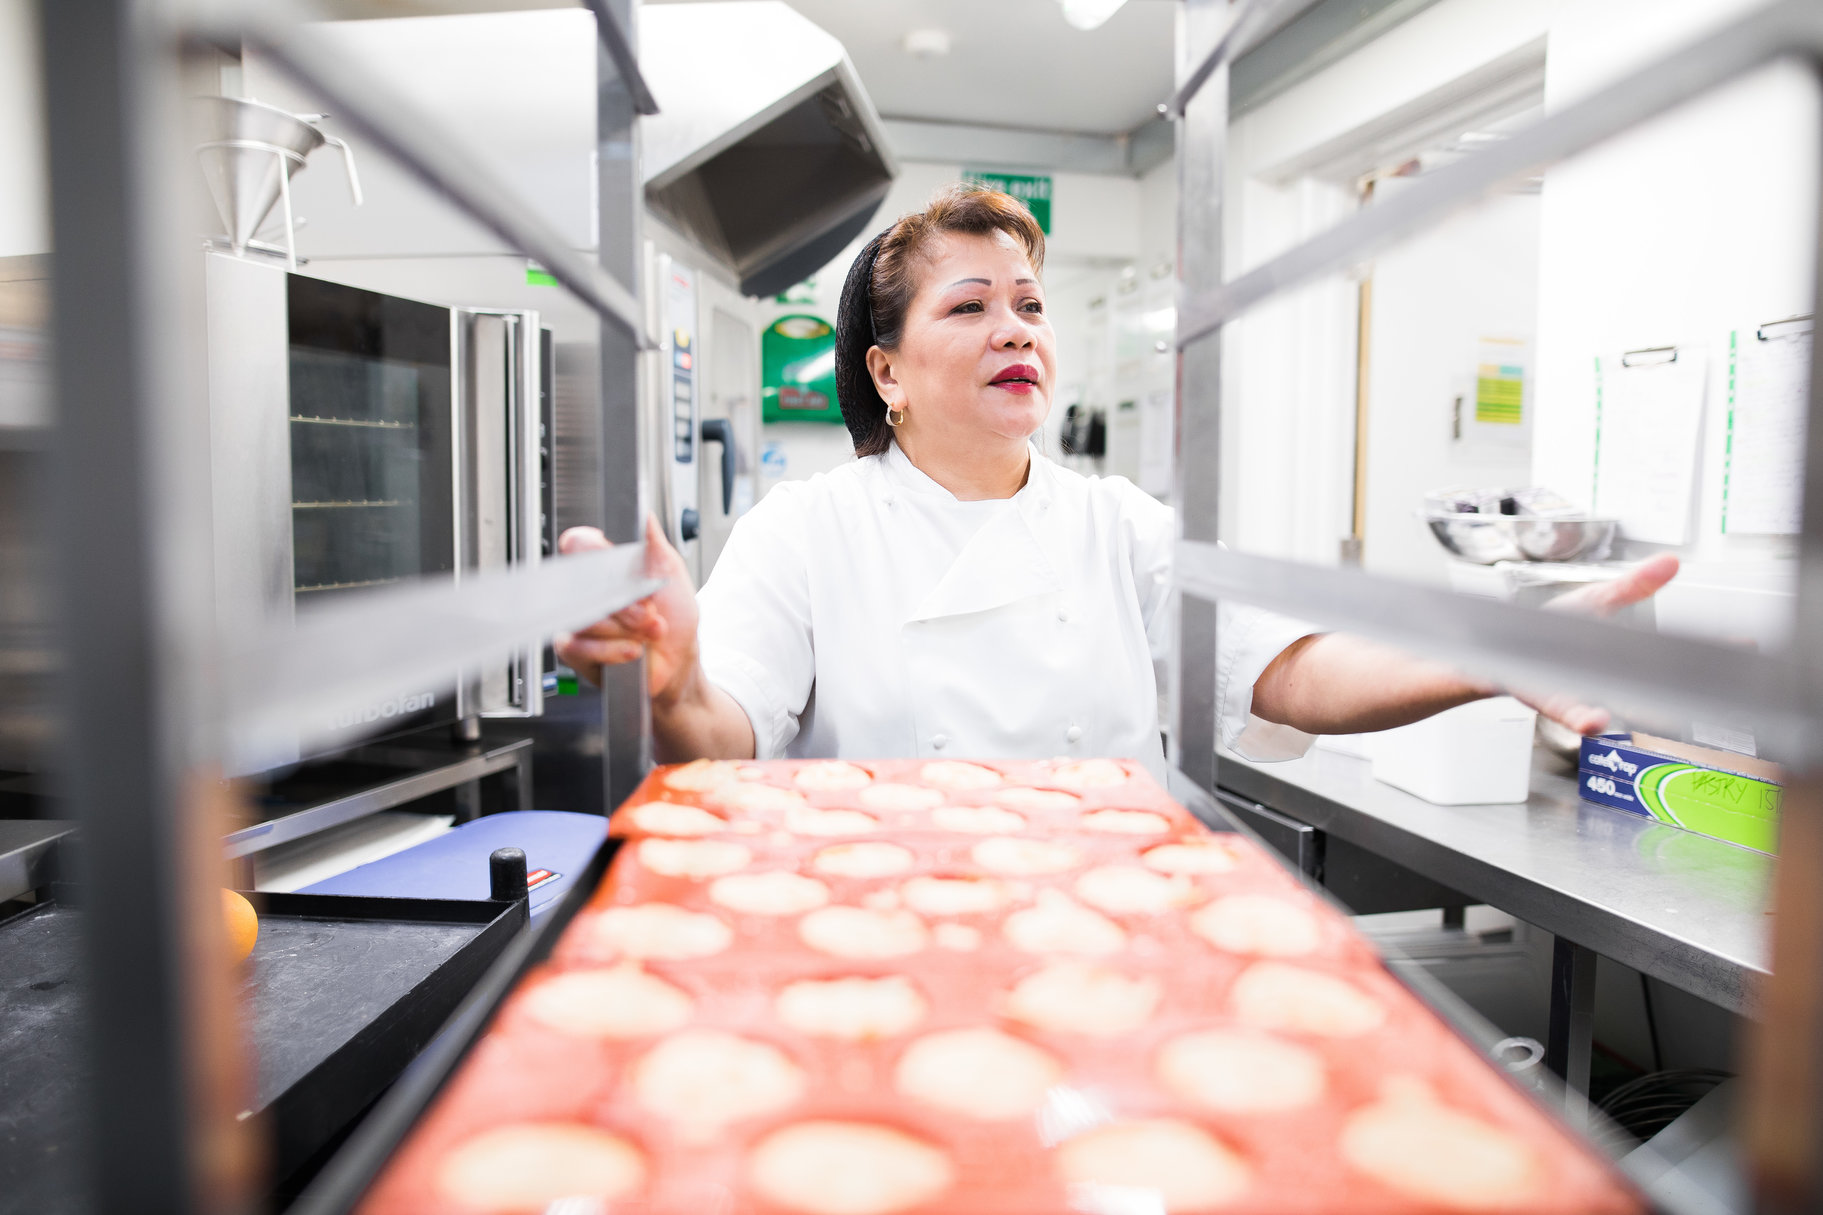 woman dressed in chef's whites taking pastries out of an industrial oven